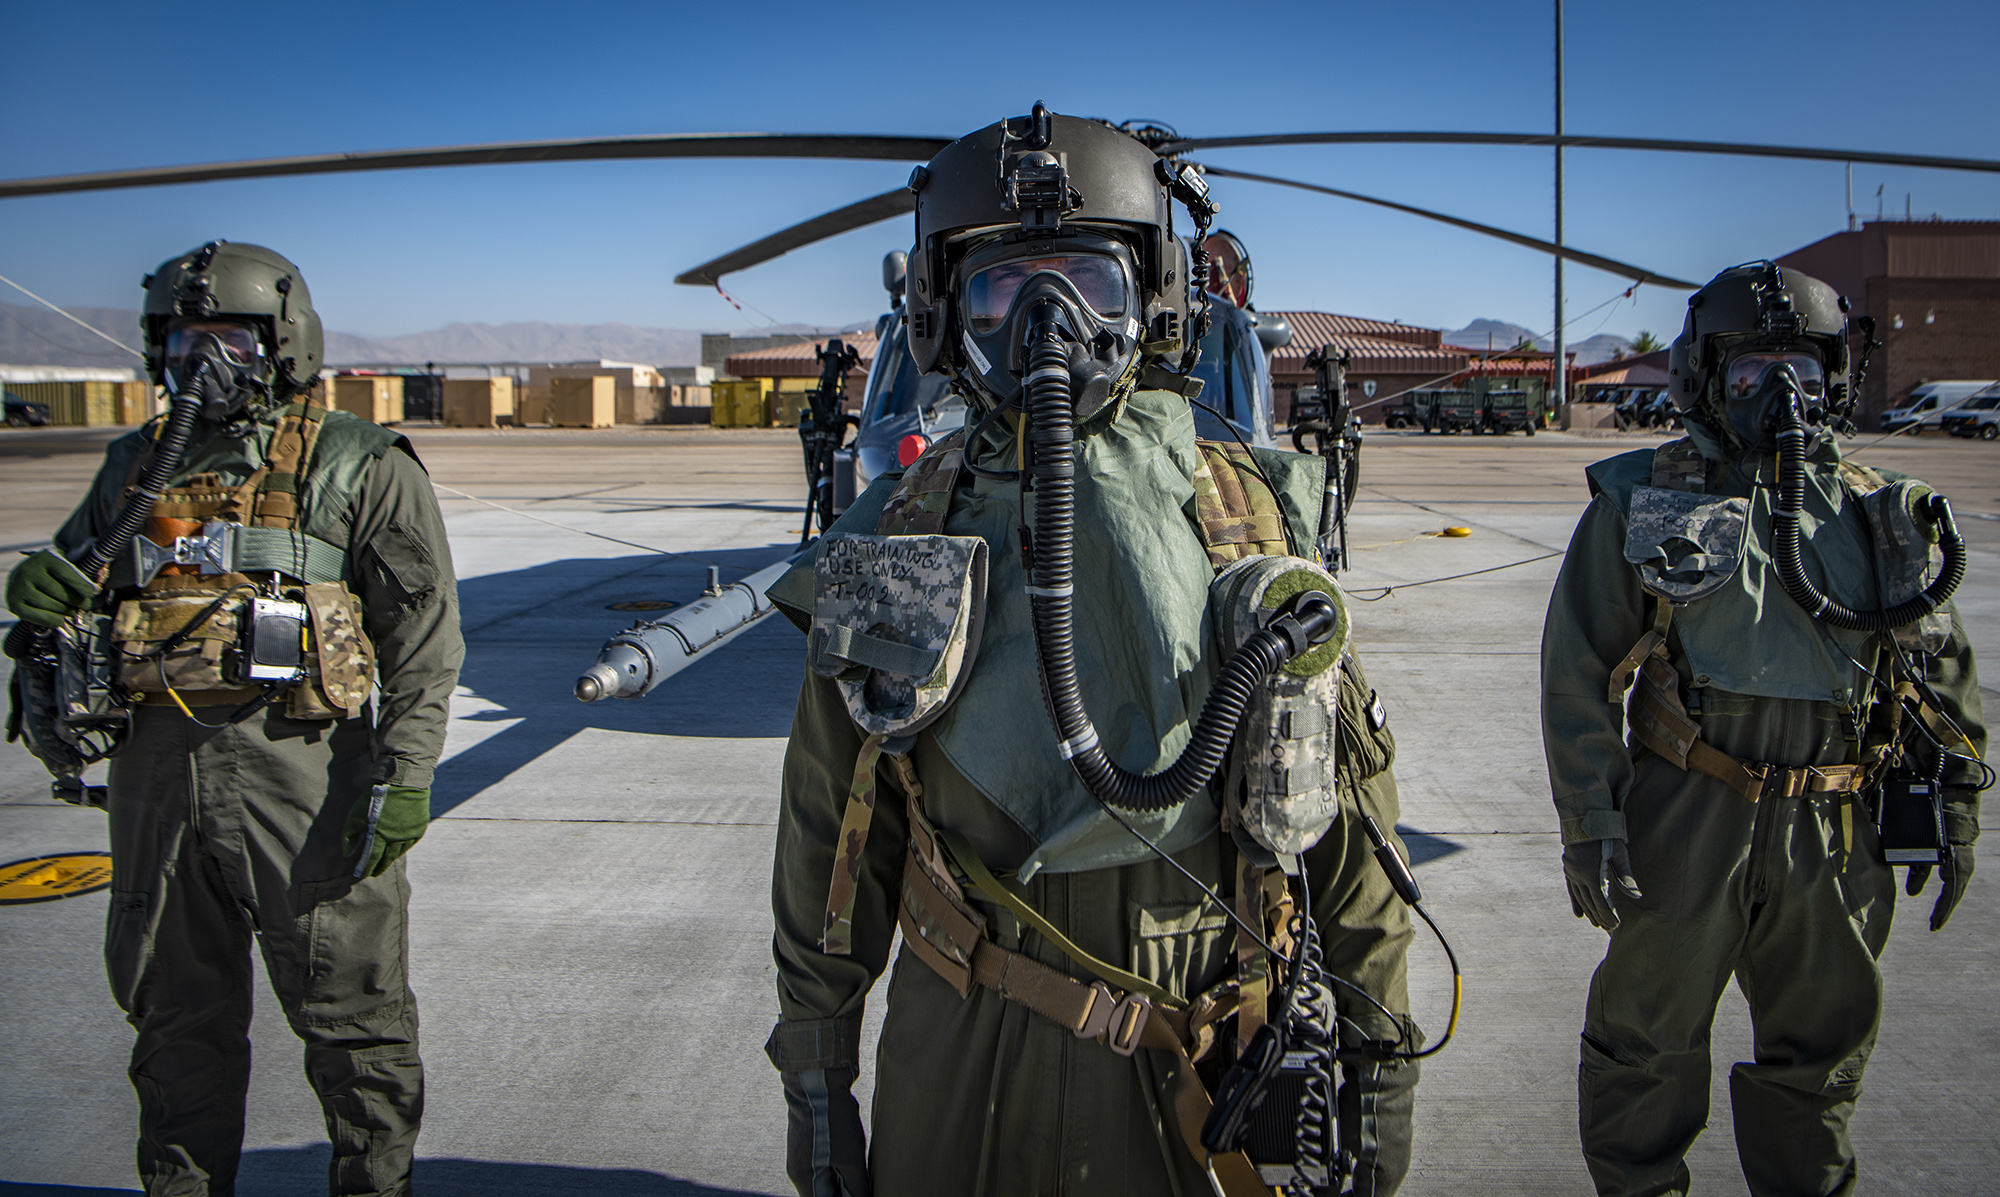 Airmen assigned to the 88th Test and Evaluation Squadron pose for a photo in full Chemical, Biological, Radiological, and Nuclear flight gear during a developmental test at Nellis Air Force Base, Nev., April 21, 2021. The airmen participated in on-going testing of the new Uniform Integrated Protective Ensemble Air two-piece system. (Senior Airman Dwane R. Young/Air Force)